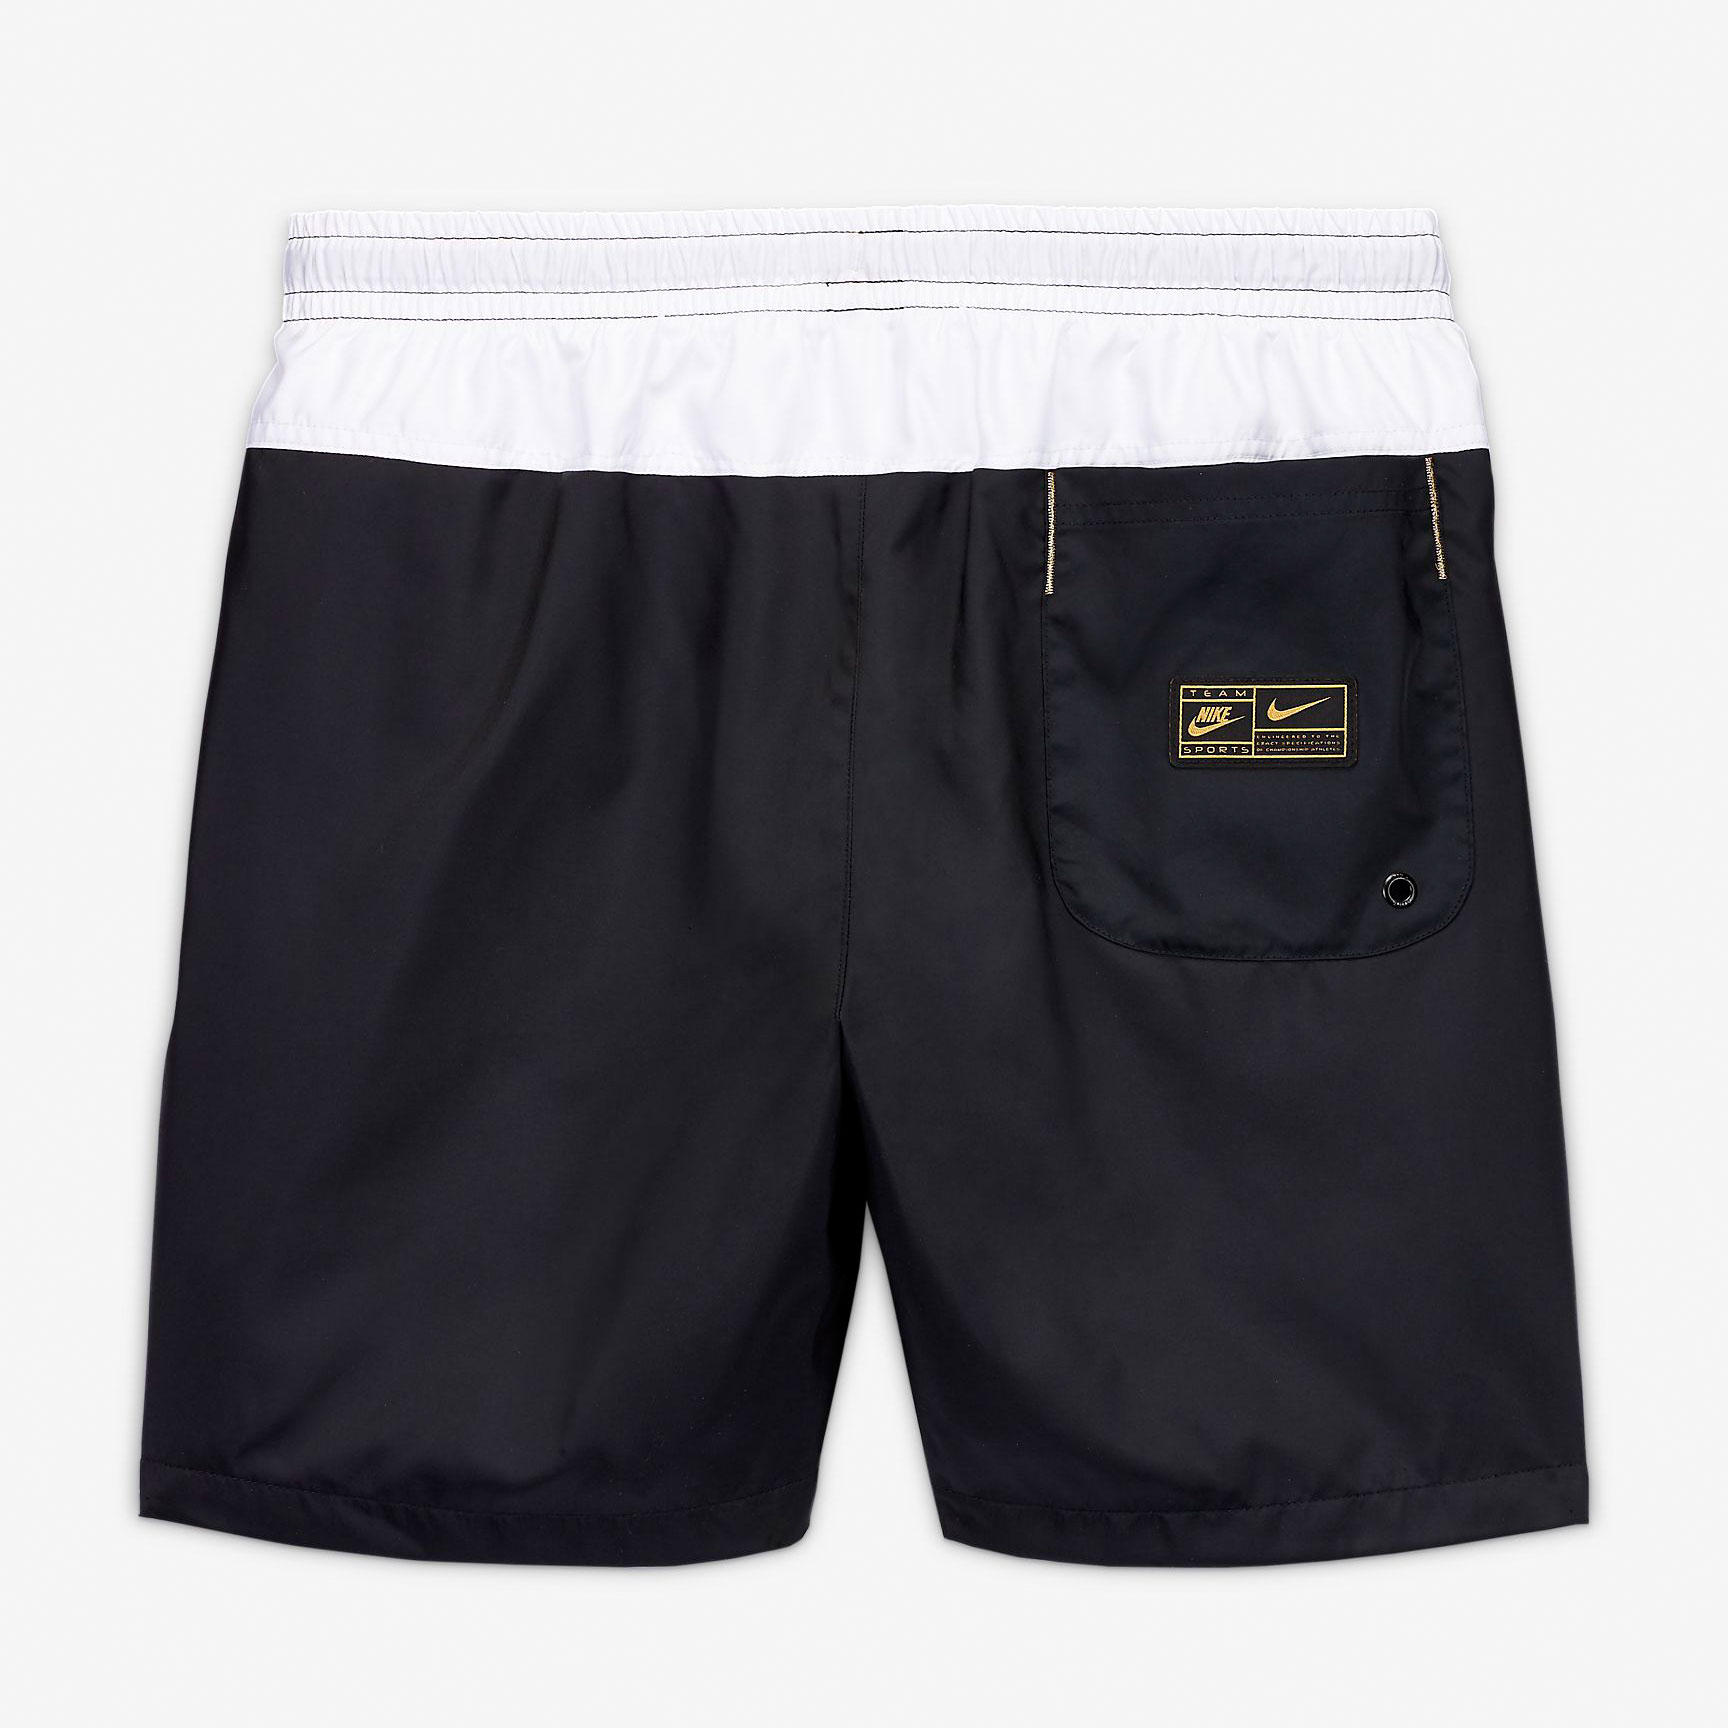 nike-shorts-black-white-gold-2